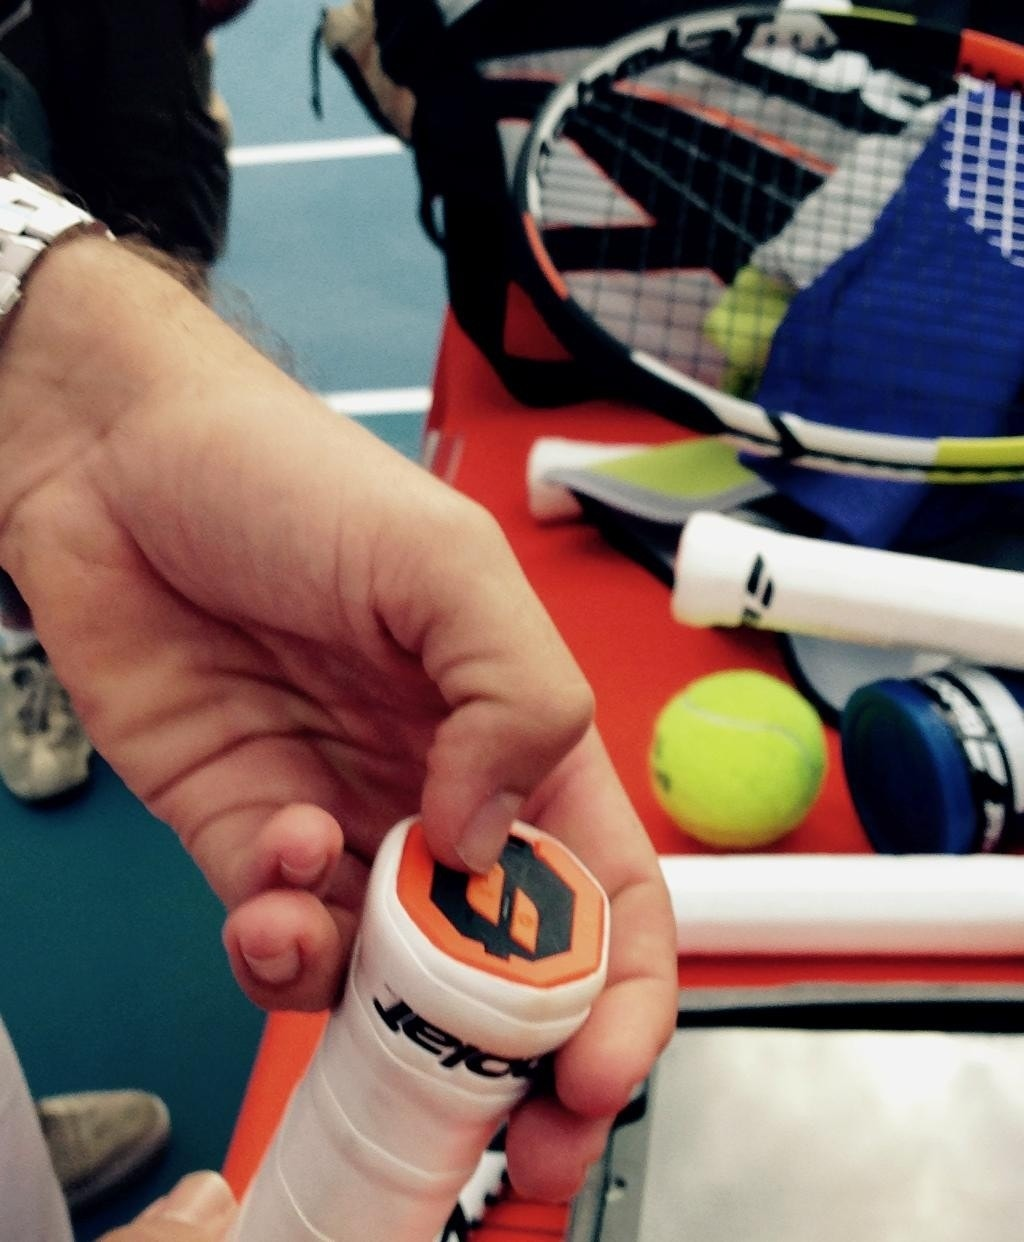 Rafael Nadal's new tennis racket comes with a power switch and tells him how he played